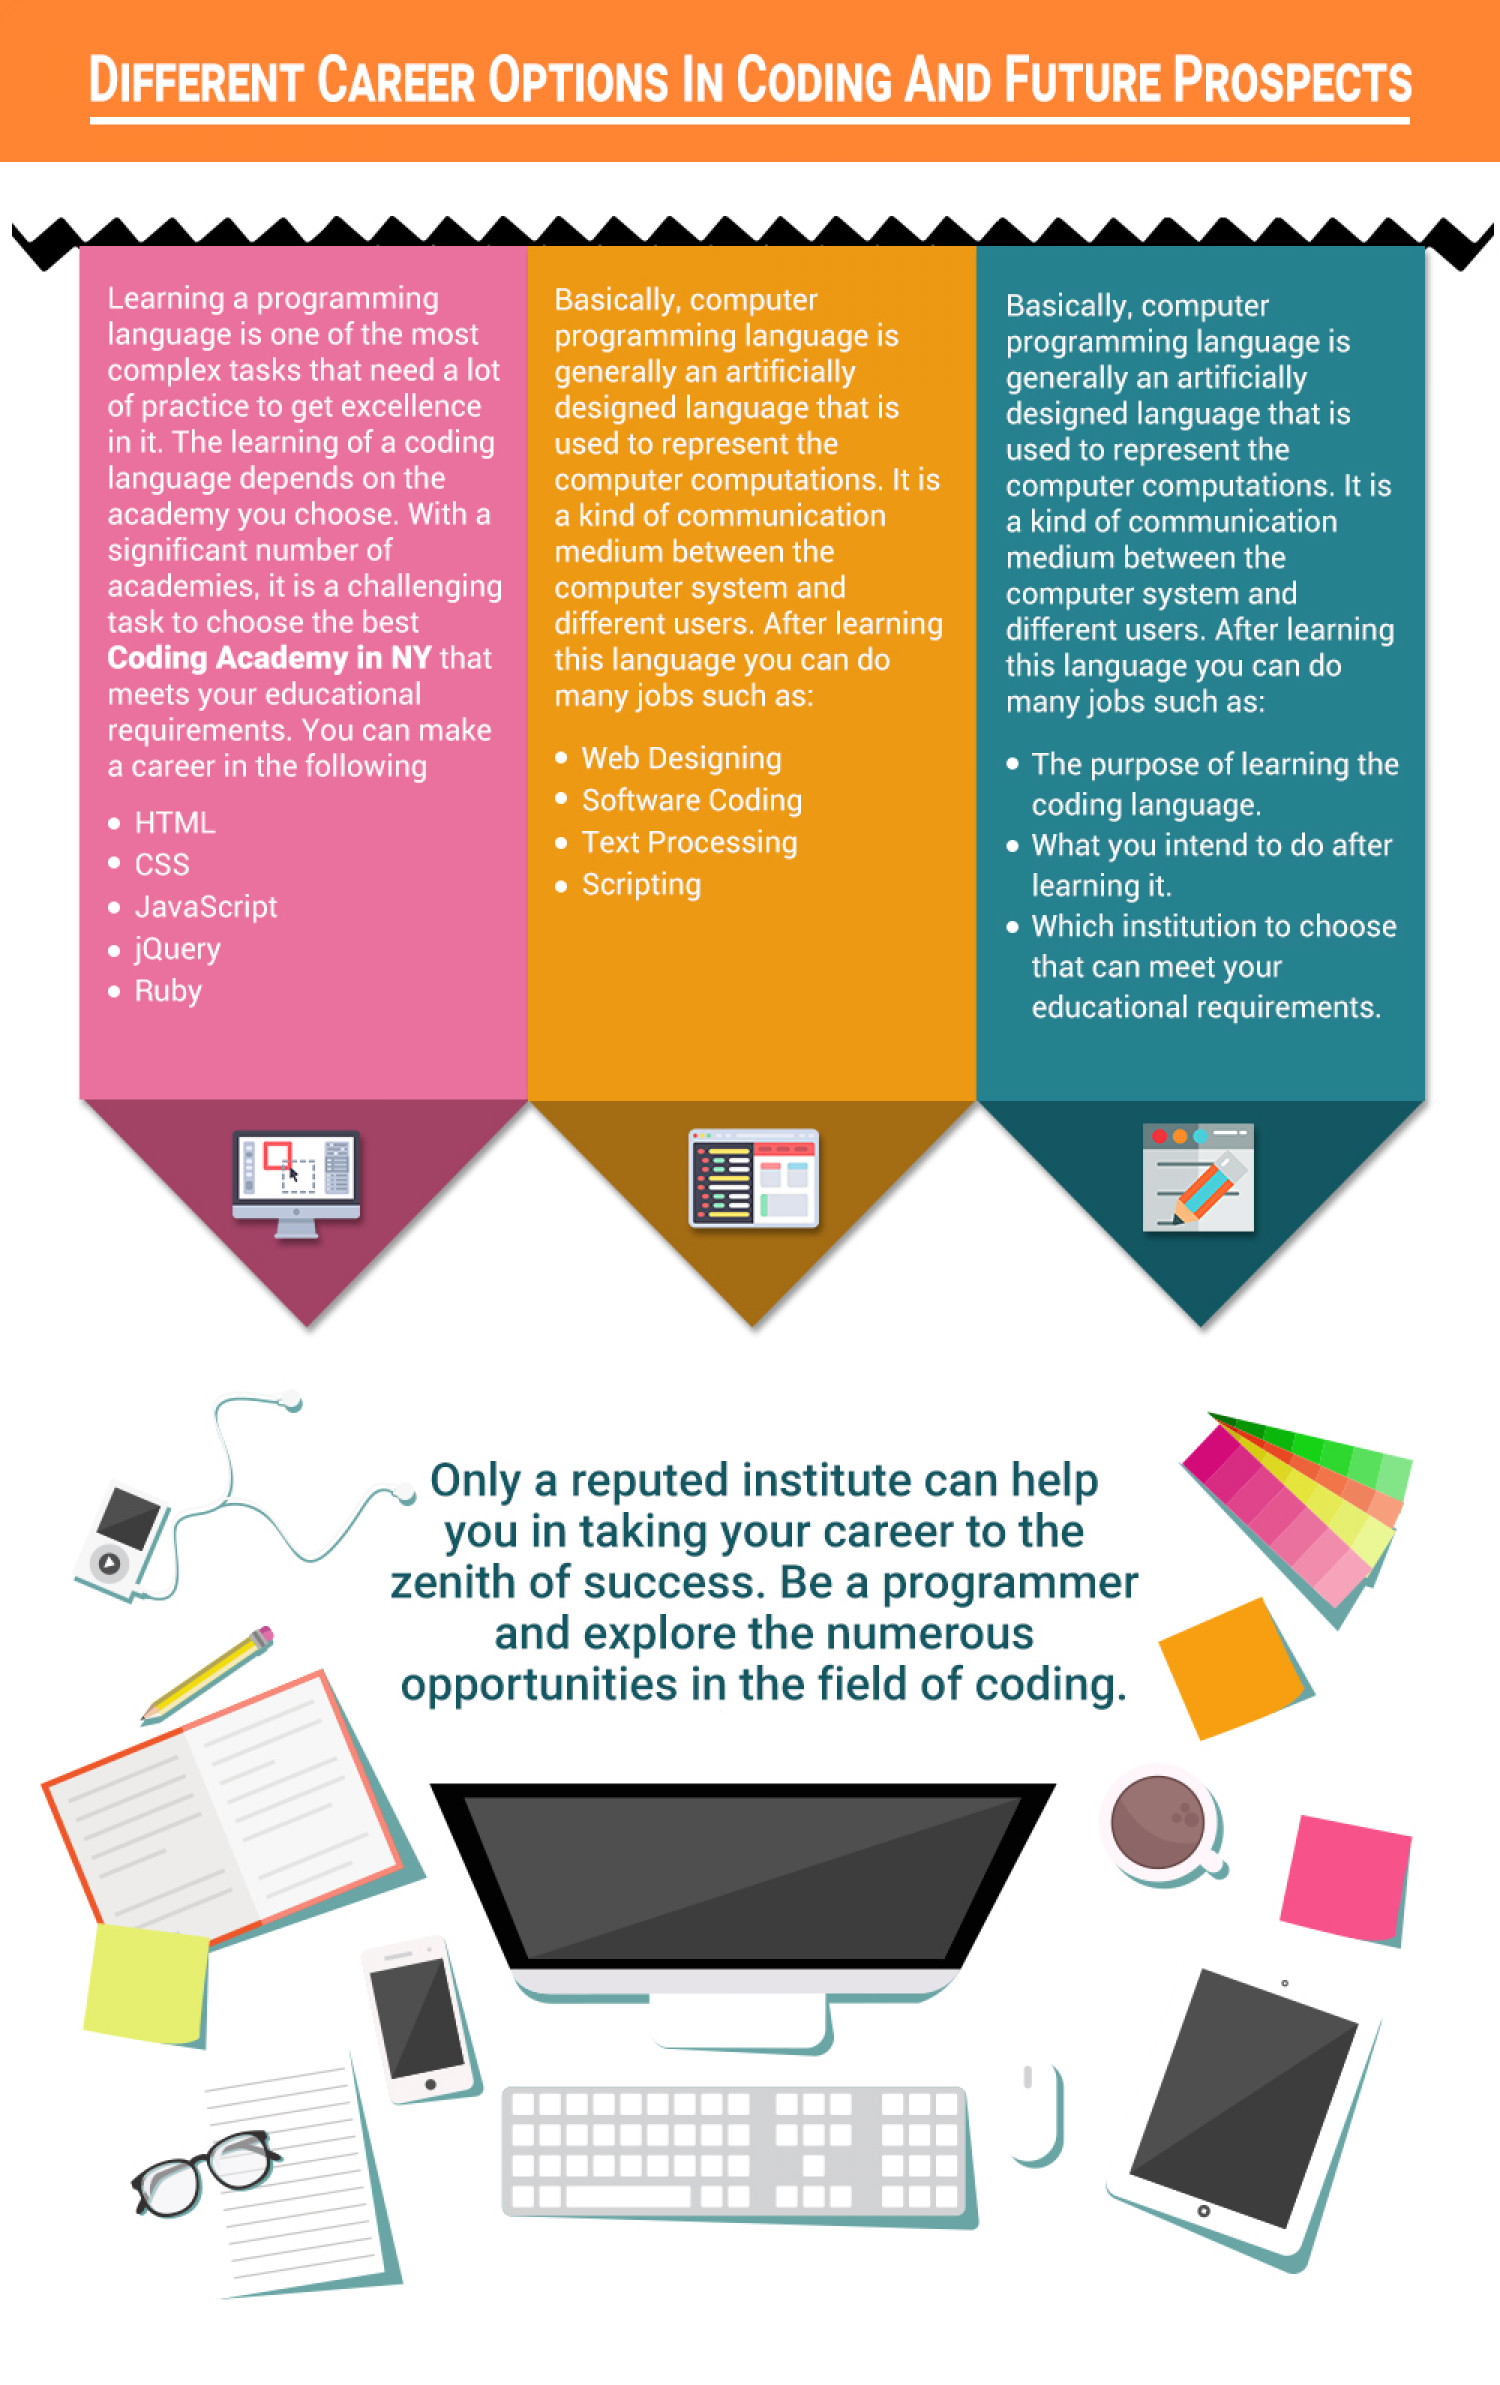 Different Career Options In Coding And Future Prospects Infographic